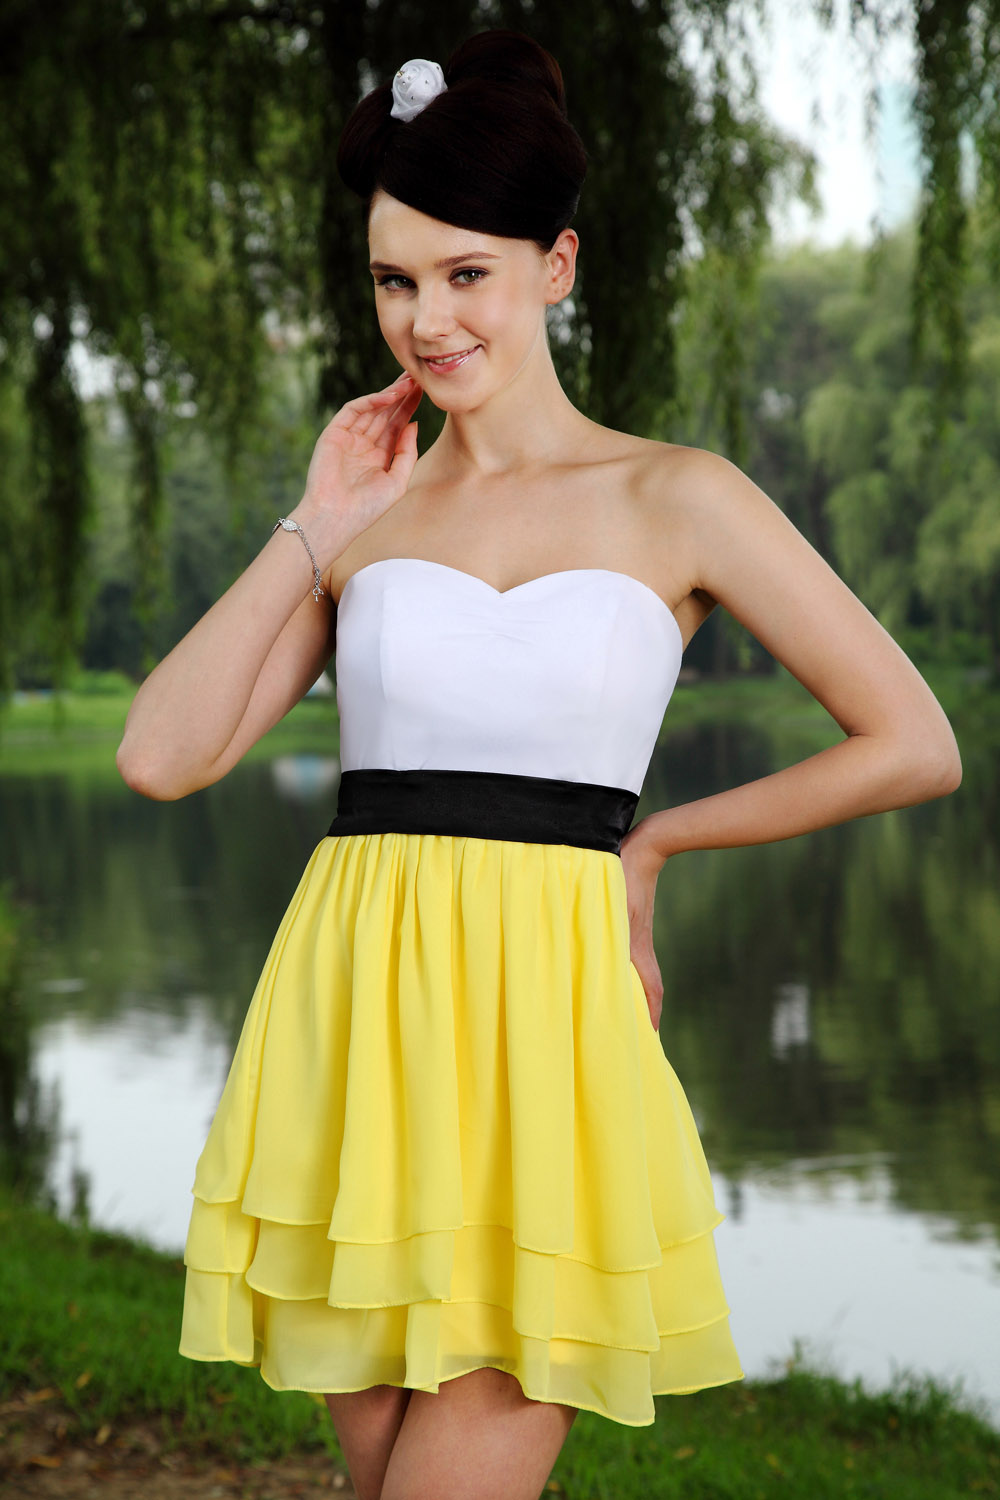 Sheath/Column Strapless Short/Mini Satin Homecoming Dress